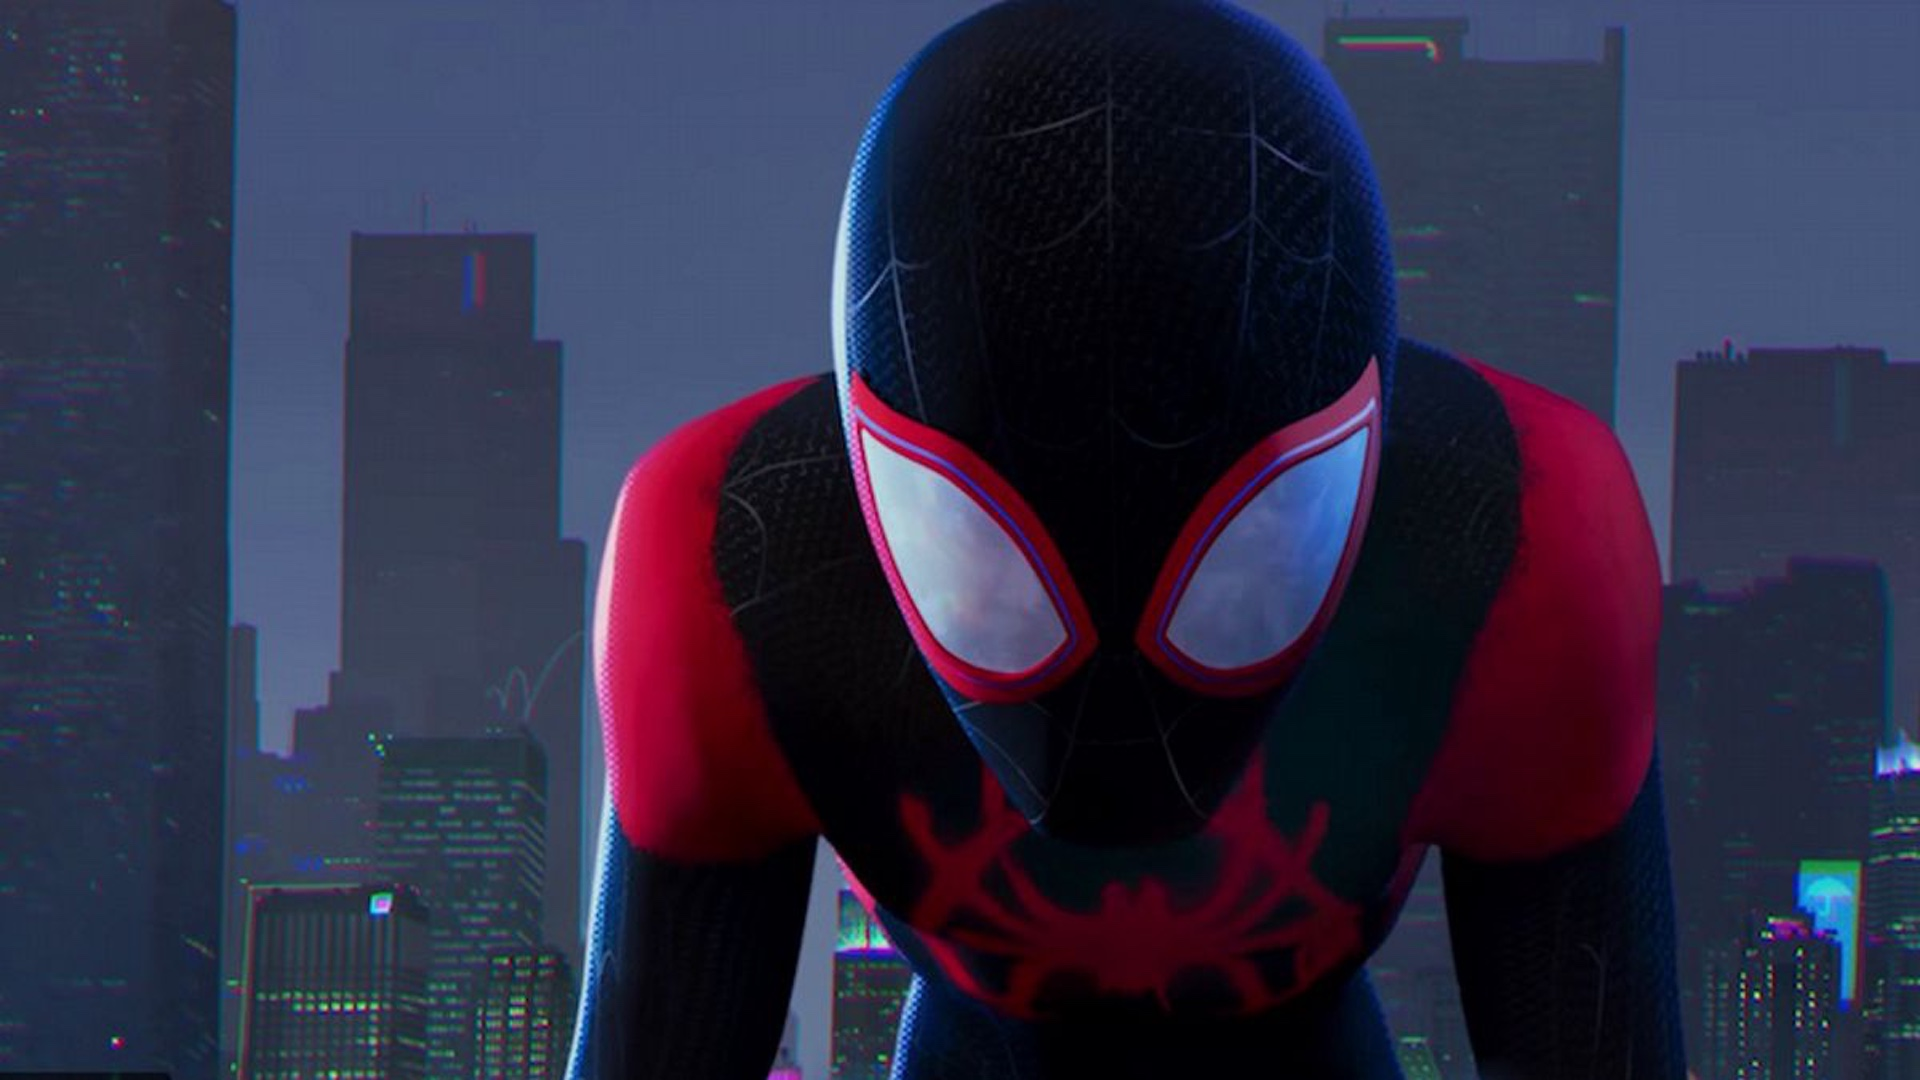 spider-man-into-the-spiderverse-three-villains-revealed-